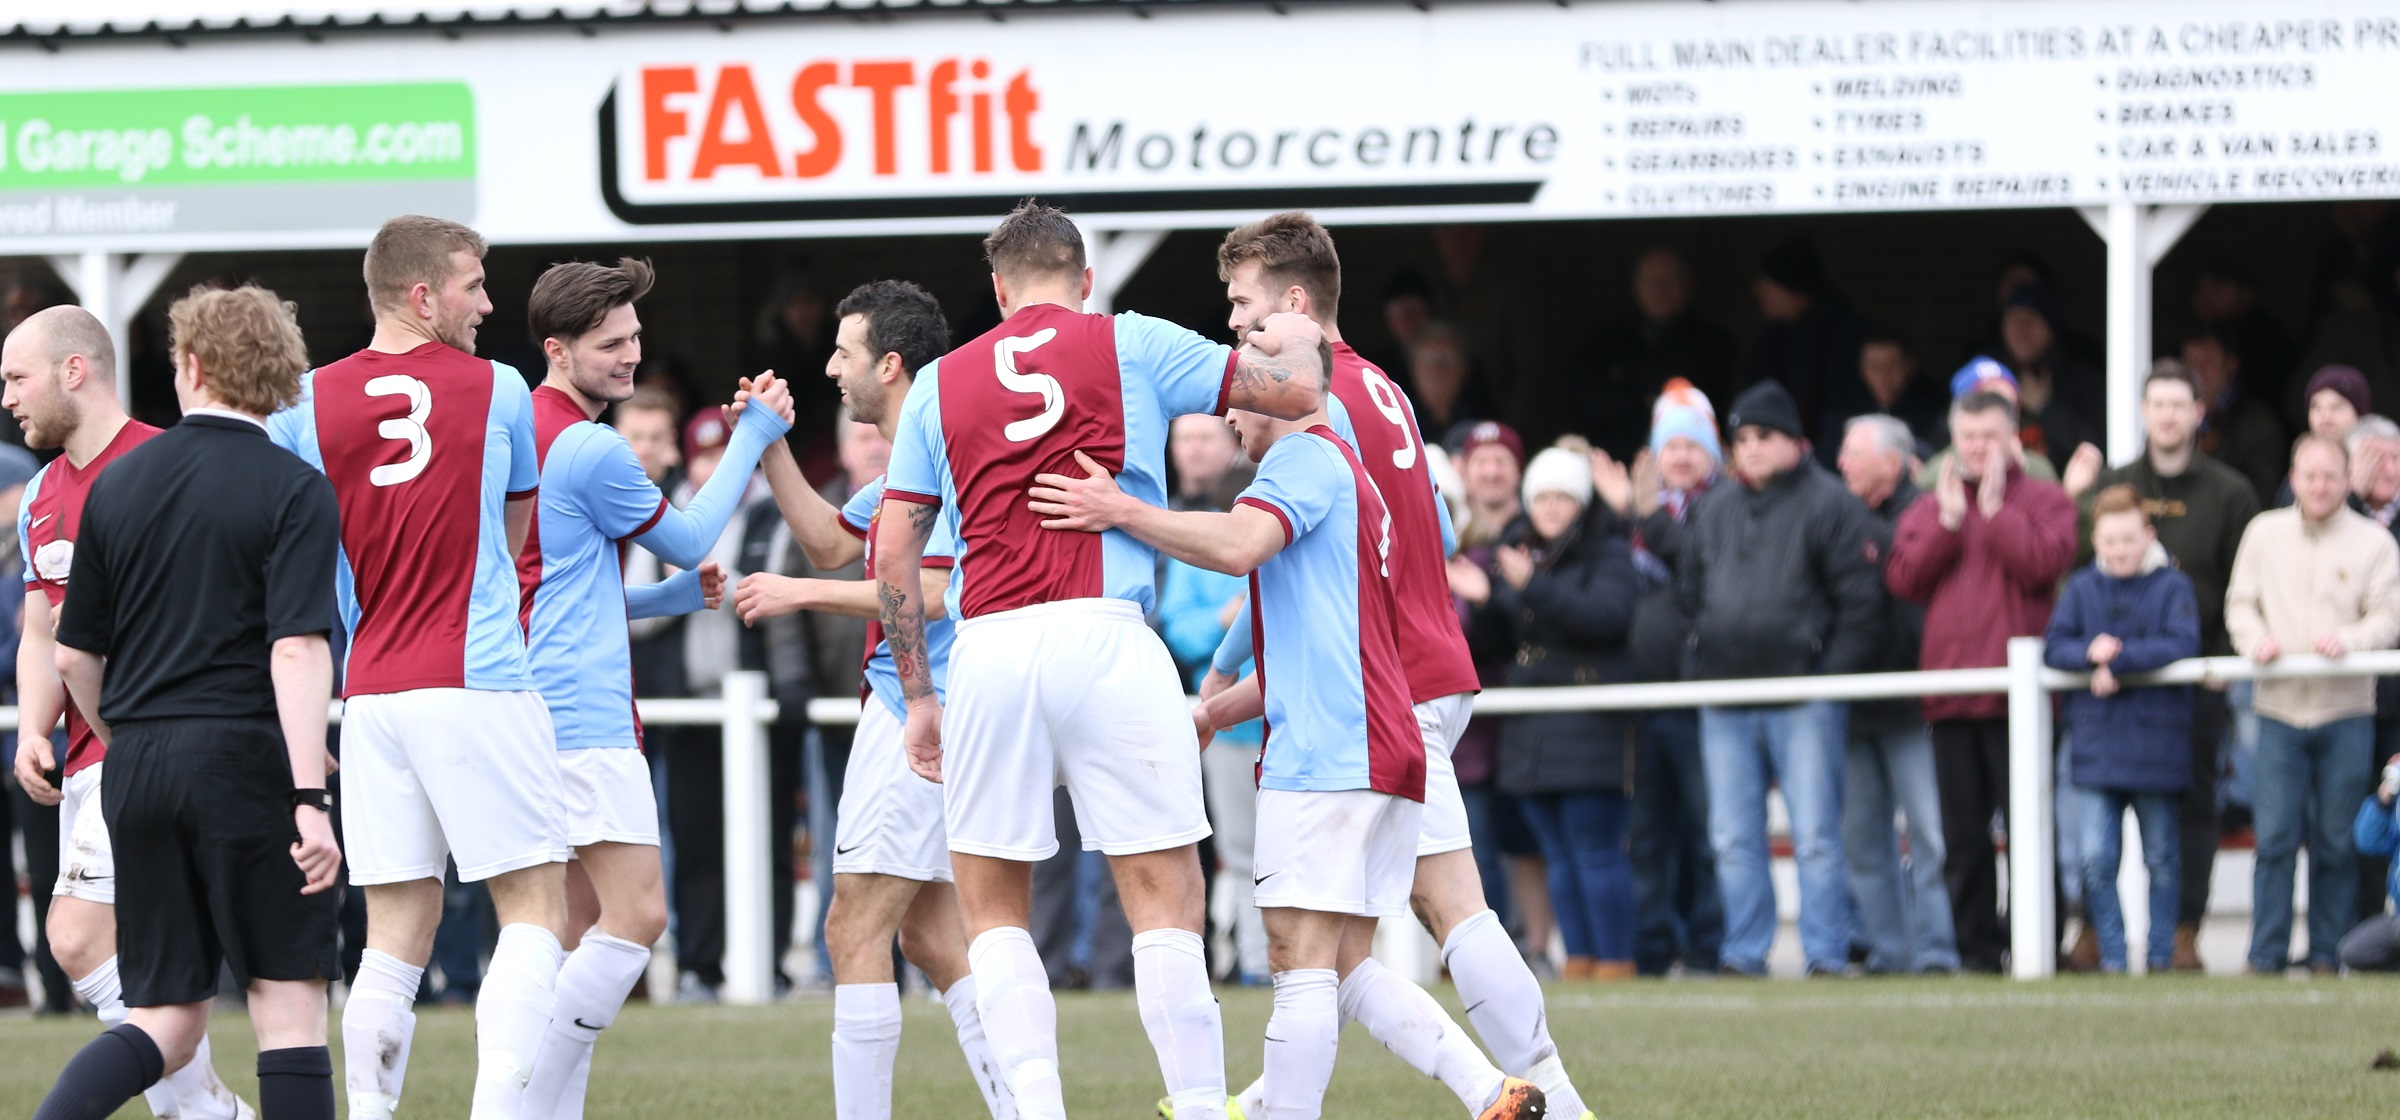 VIDEO: Bumper crowds at Mariners Park inspiring the players – John Grey